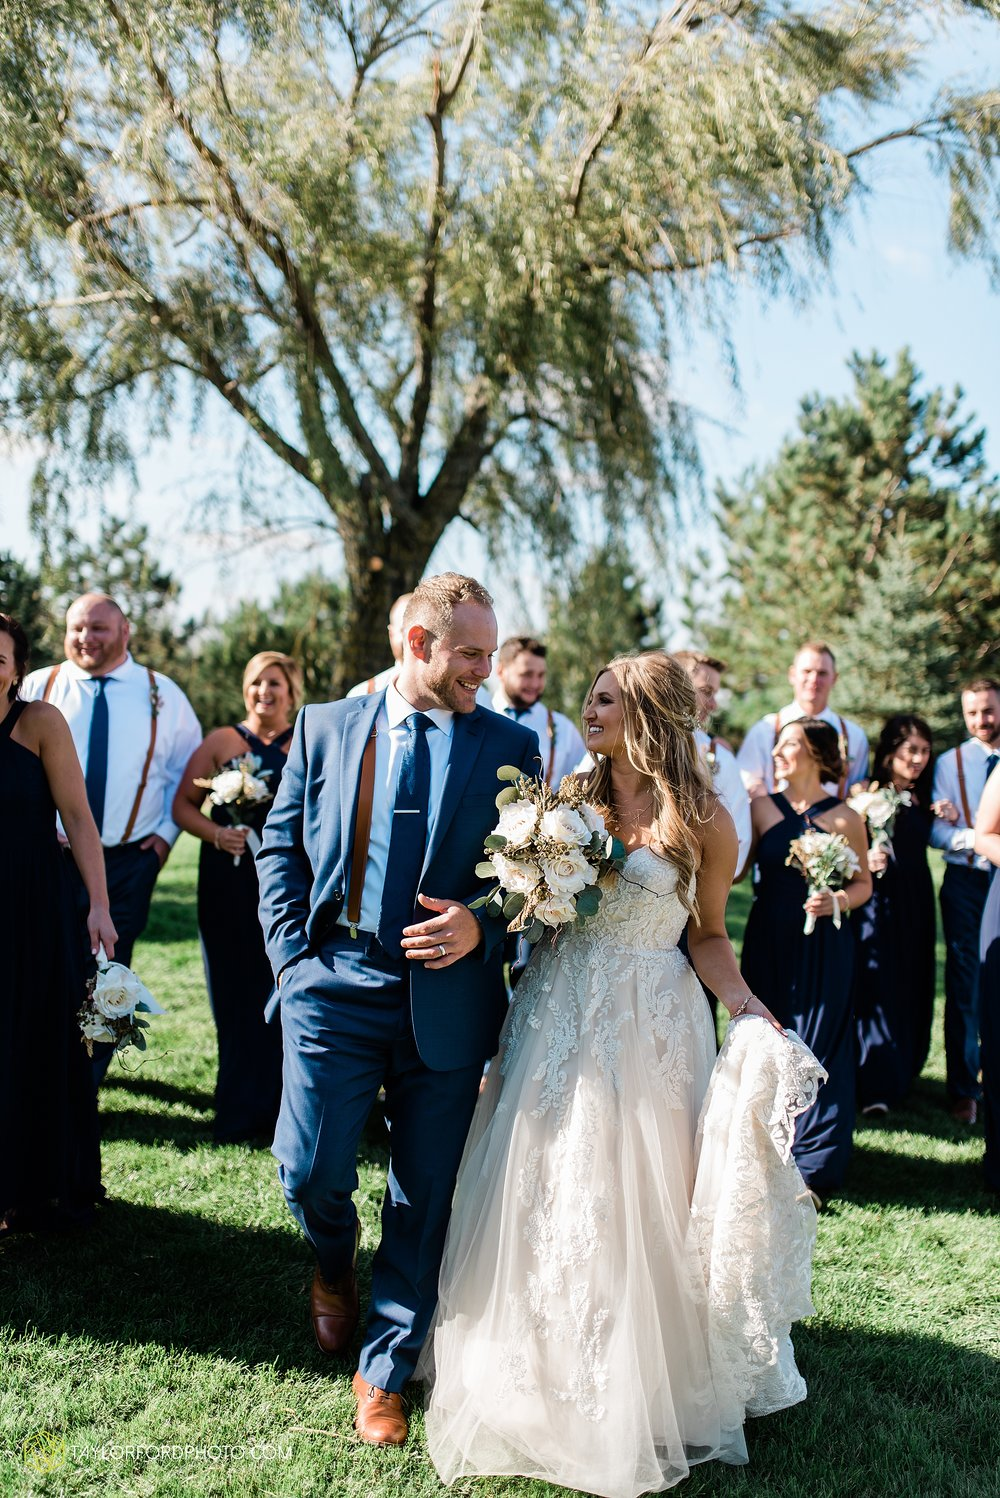 mckenzie-nofer-jordan-gibson-van-wert-ohio-wedding-saint-marys-of-the-assumption-backyard-pull-barn-reception-country-horse-photographer-taylor-ford-photography_1119.jpg